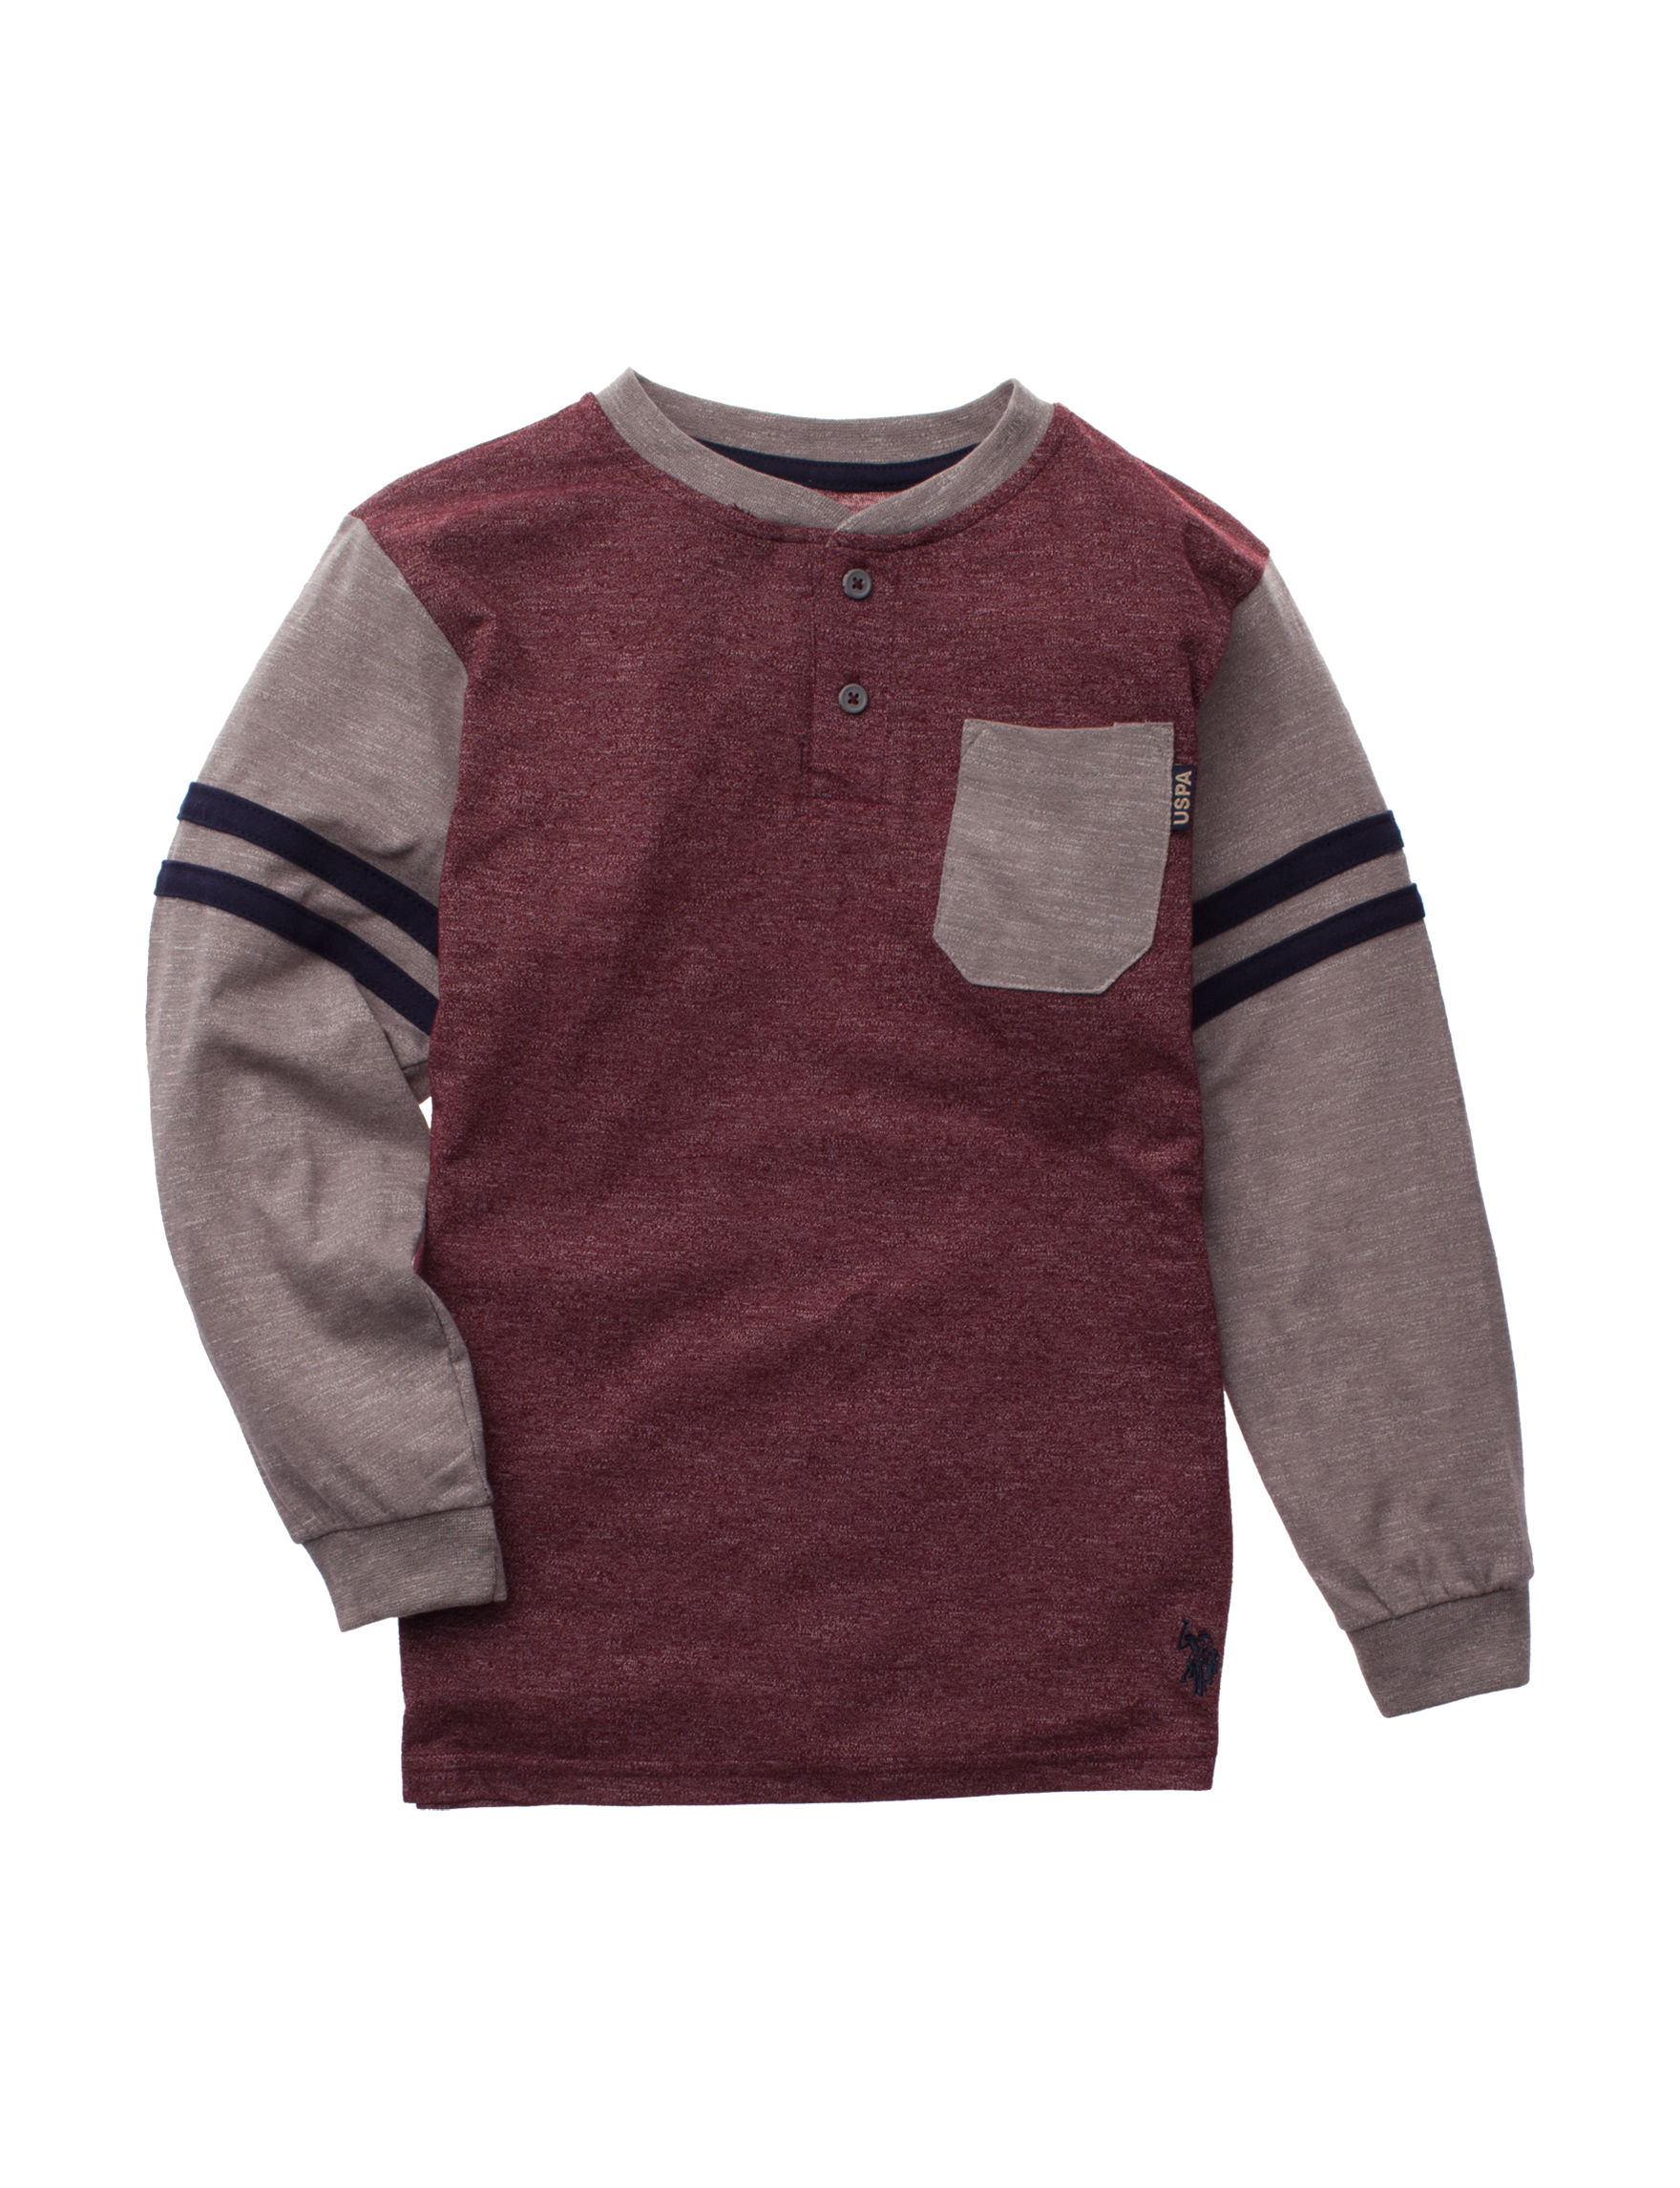 U.S. Polo Assn. Burgundy Heather Tees & Tanks